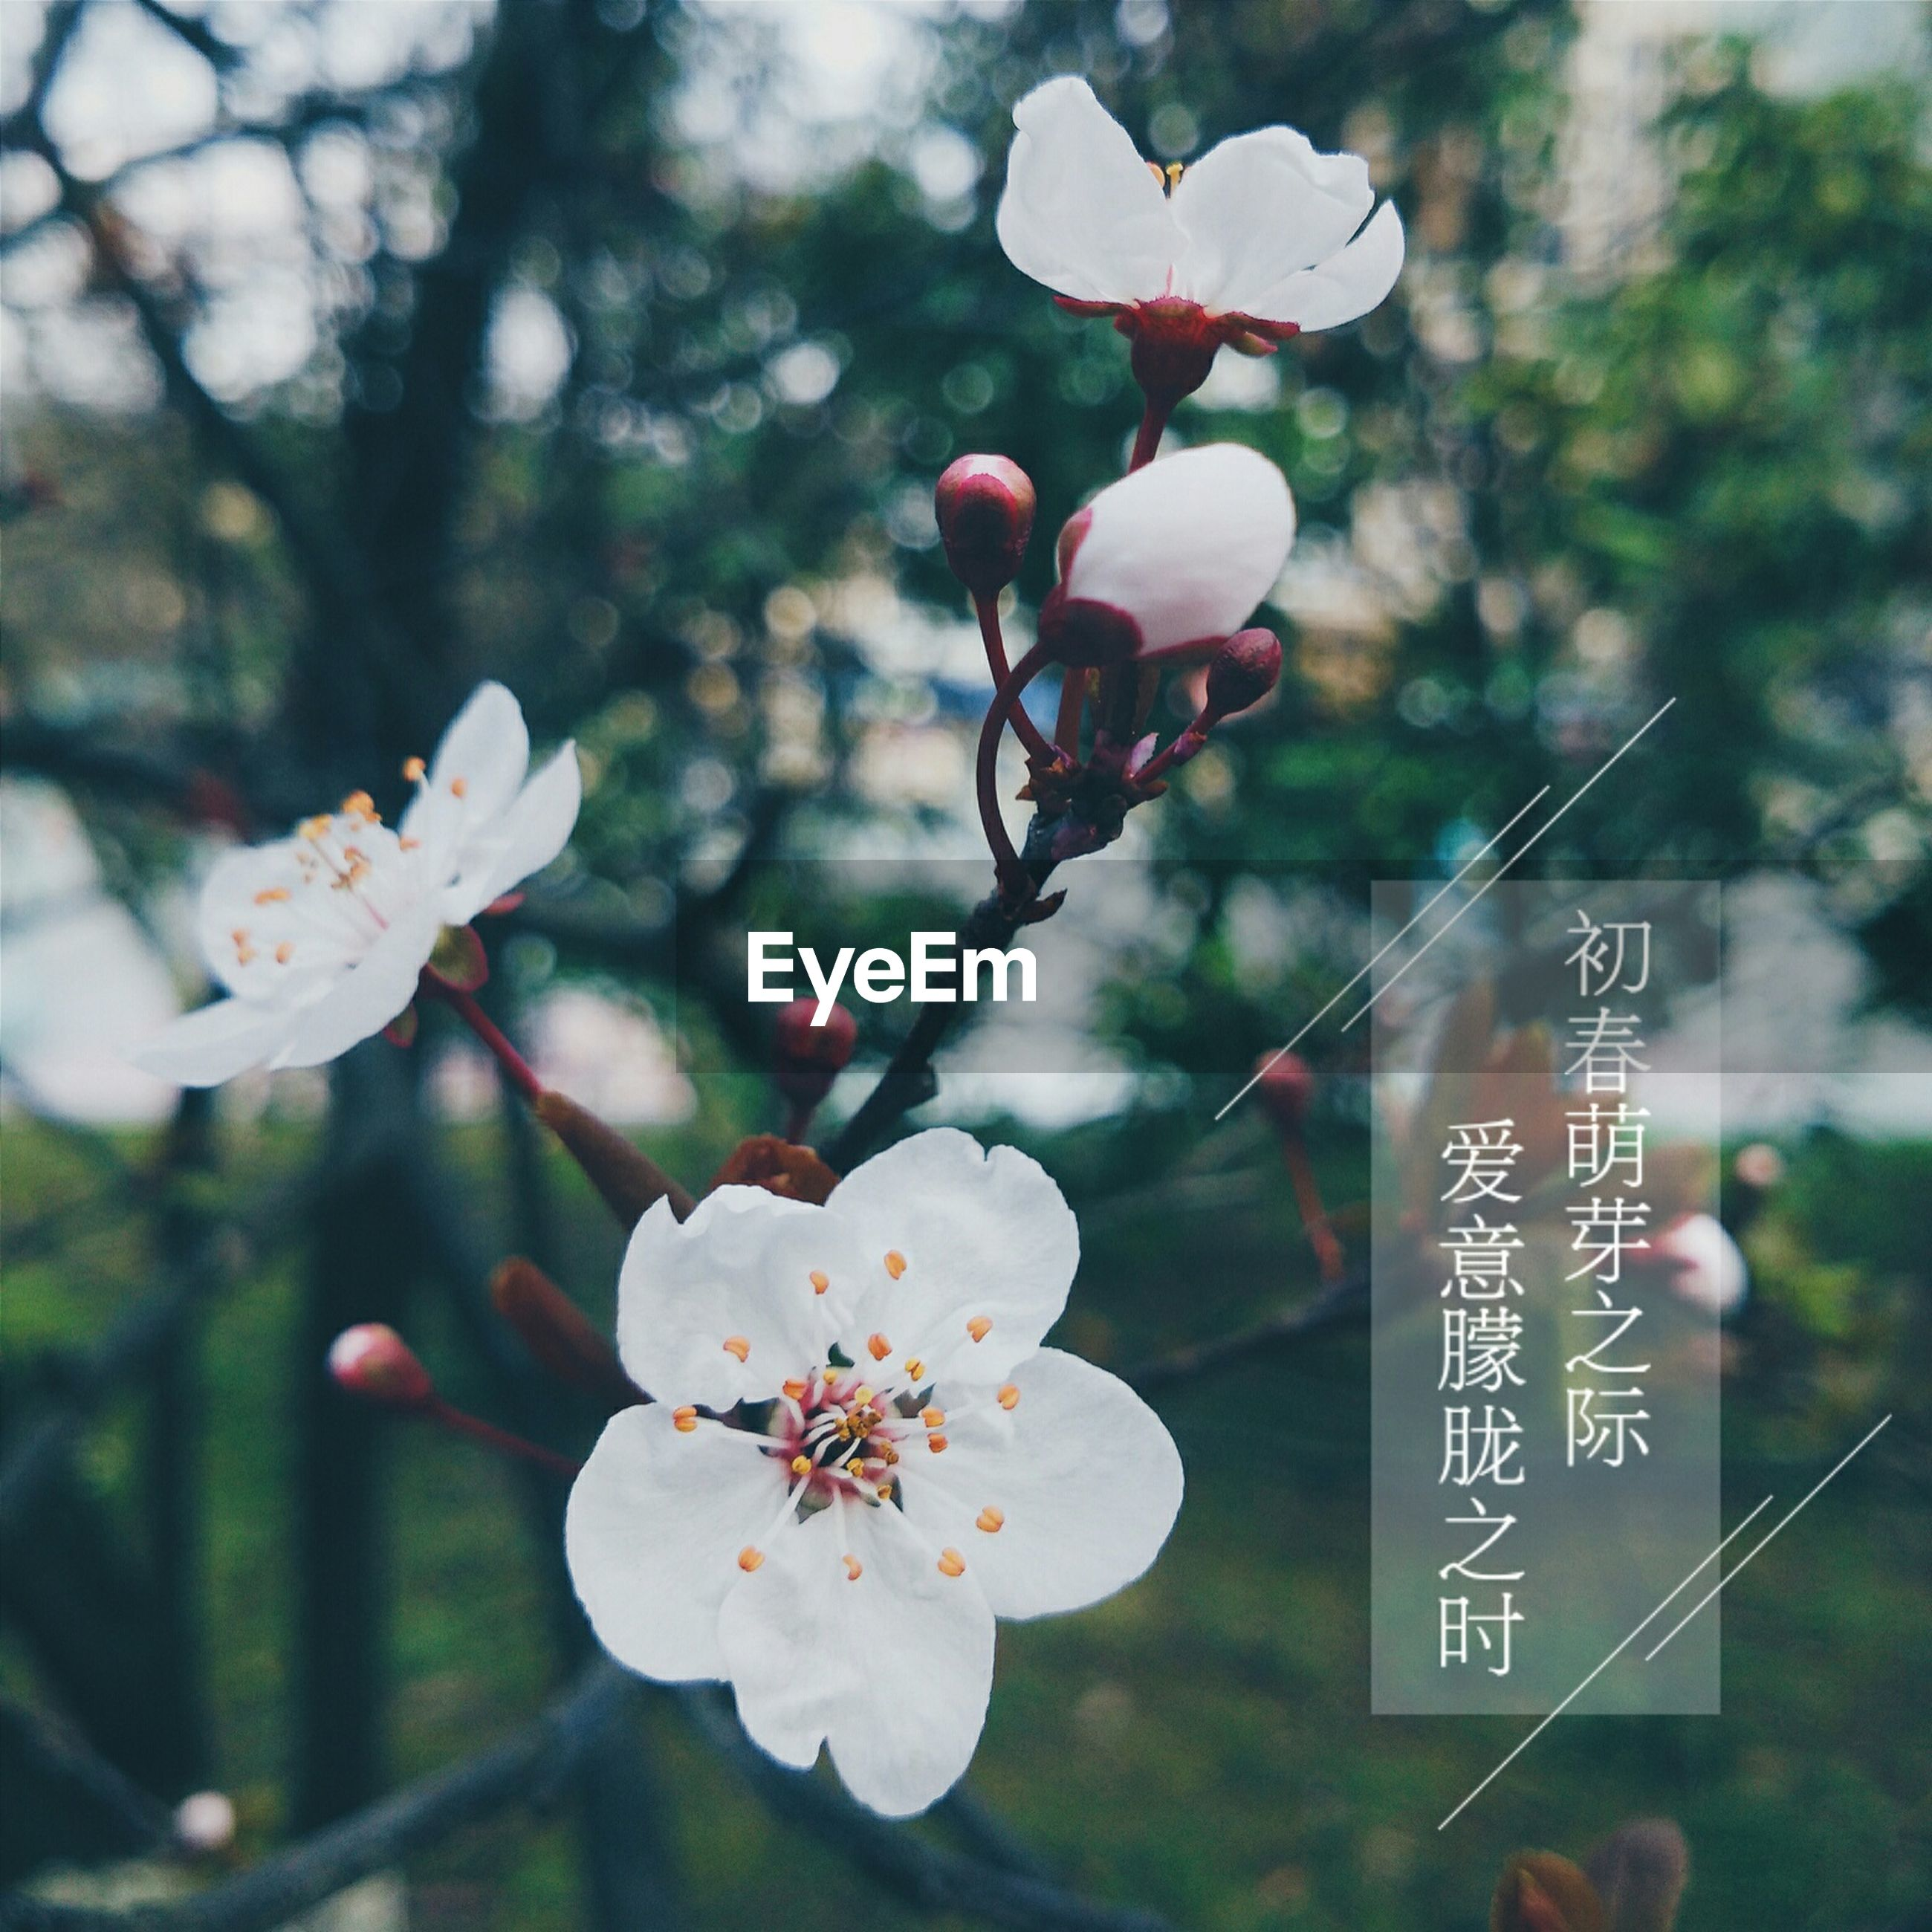 flower, freshness, growth, focus on foreground, tree, fragility, branch, beauty in nature, close-up, nature, petal, cherry blossom, blooming, blossom, white color, twig, day, fruit tree, in bloom, plant